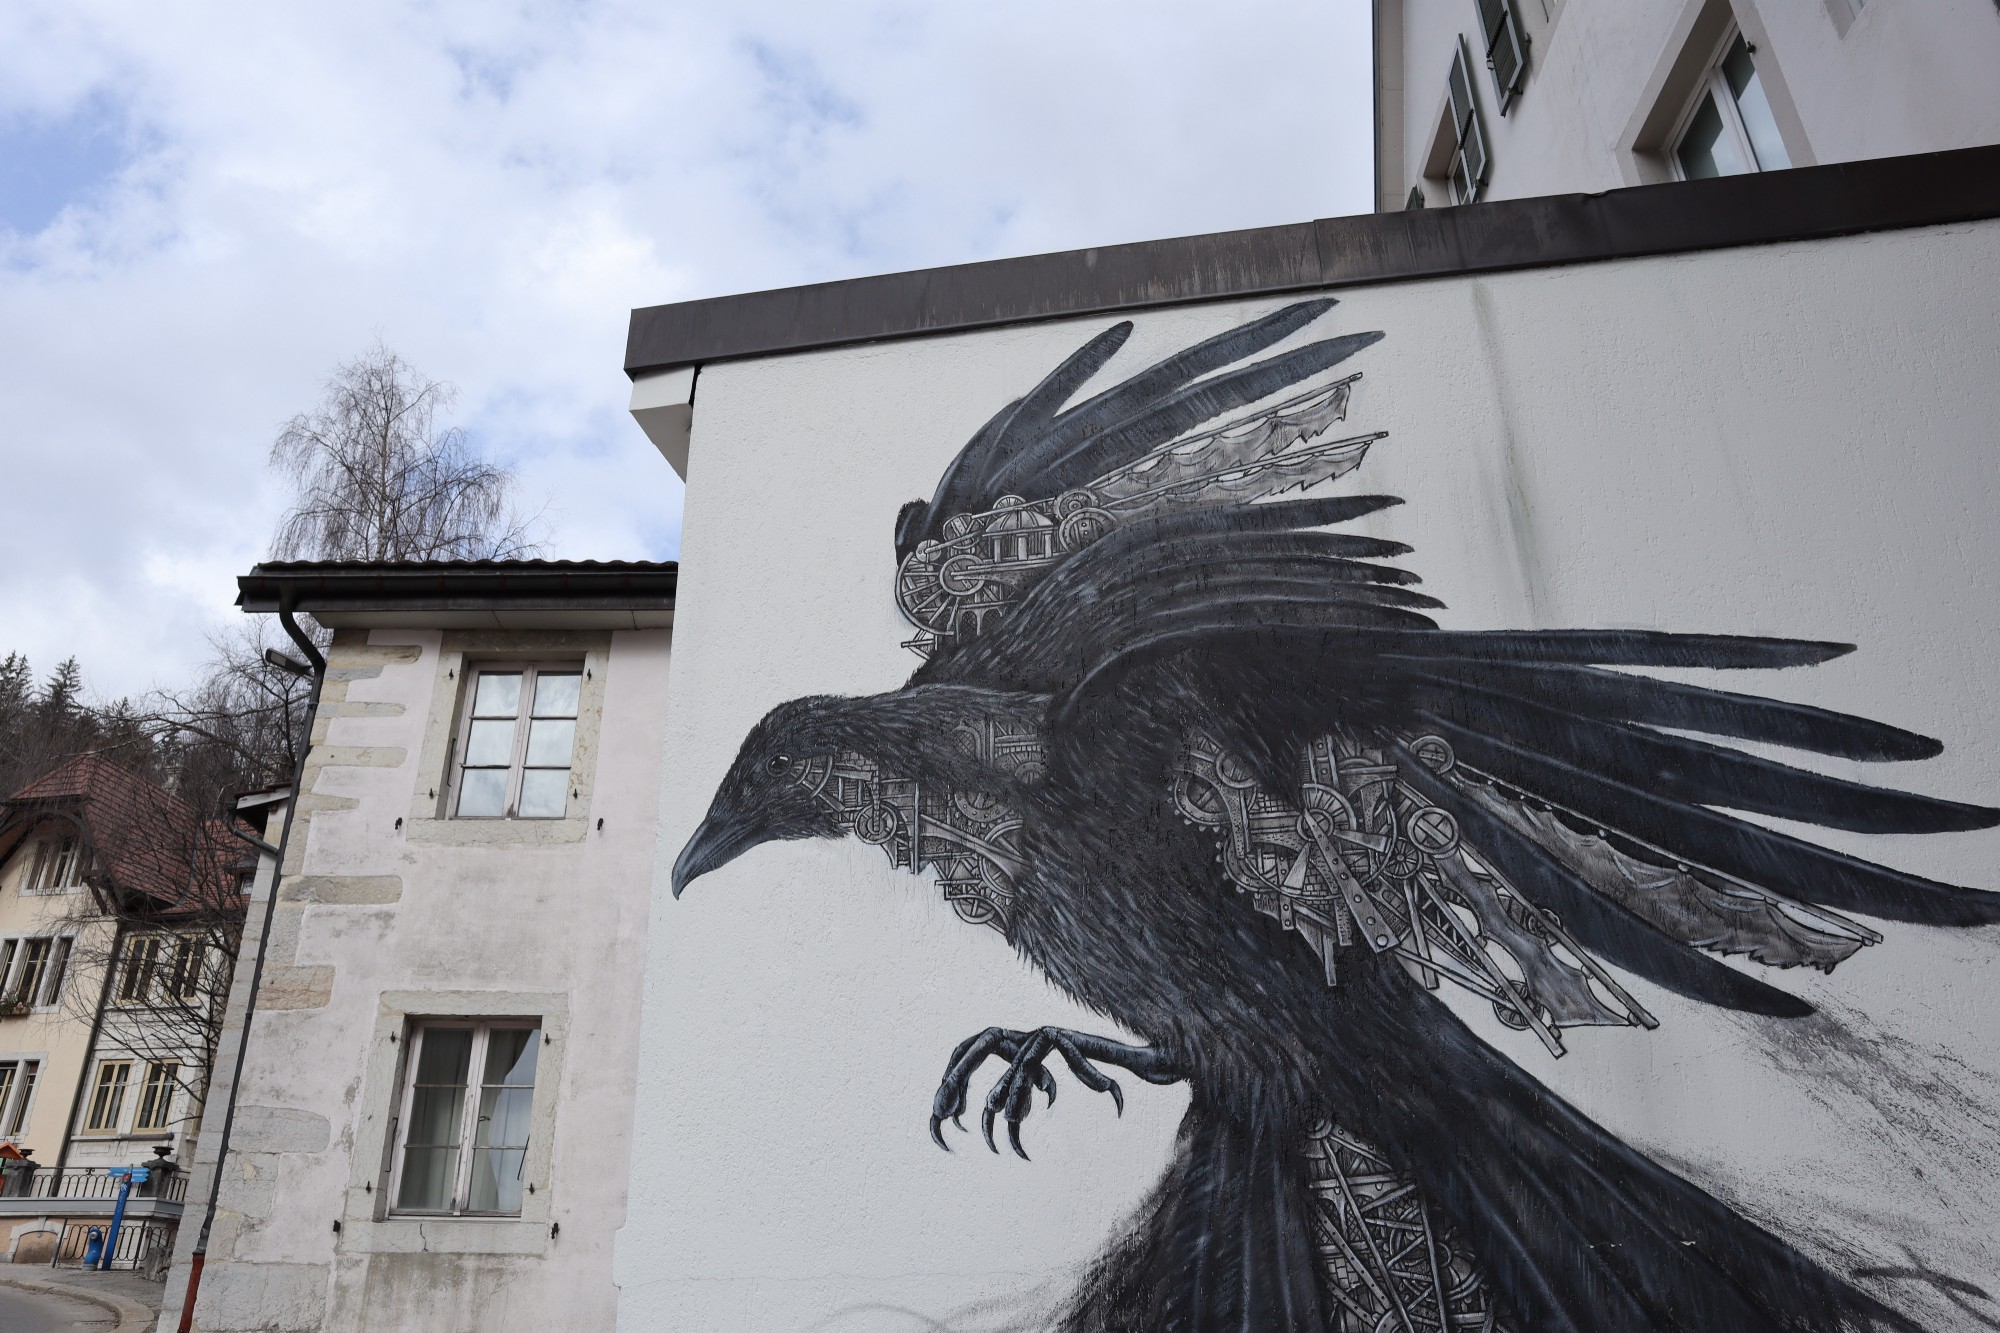 A mural showing a raven with a clockwork in his feathers on a white wall.